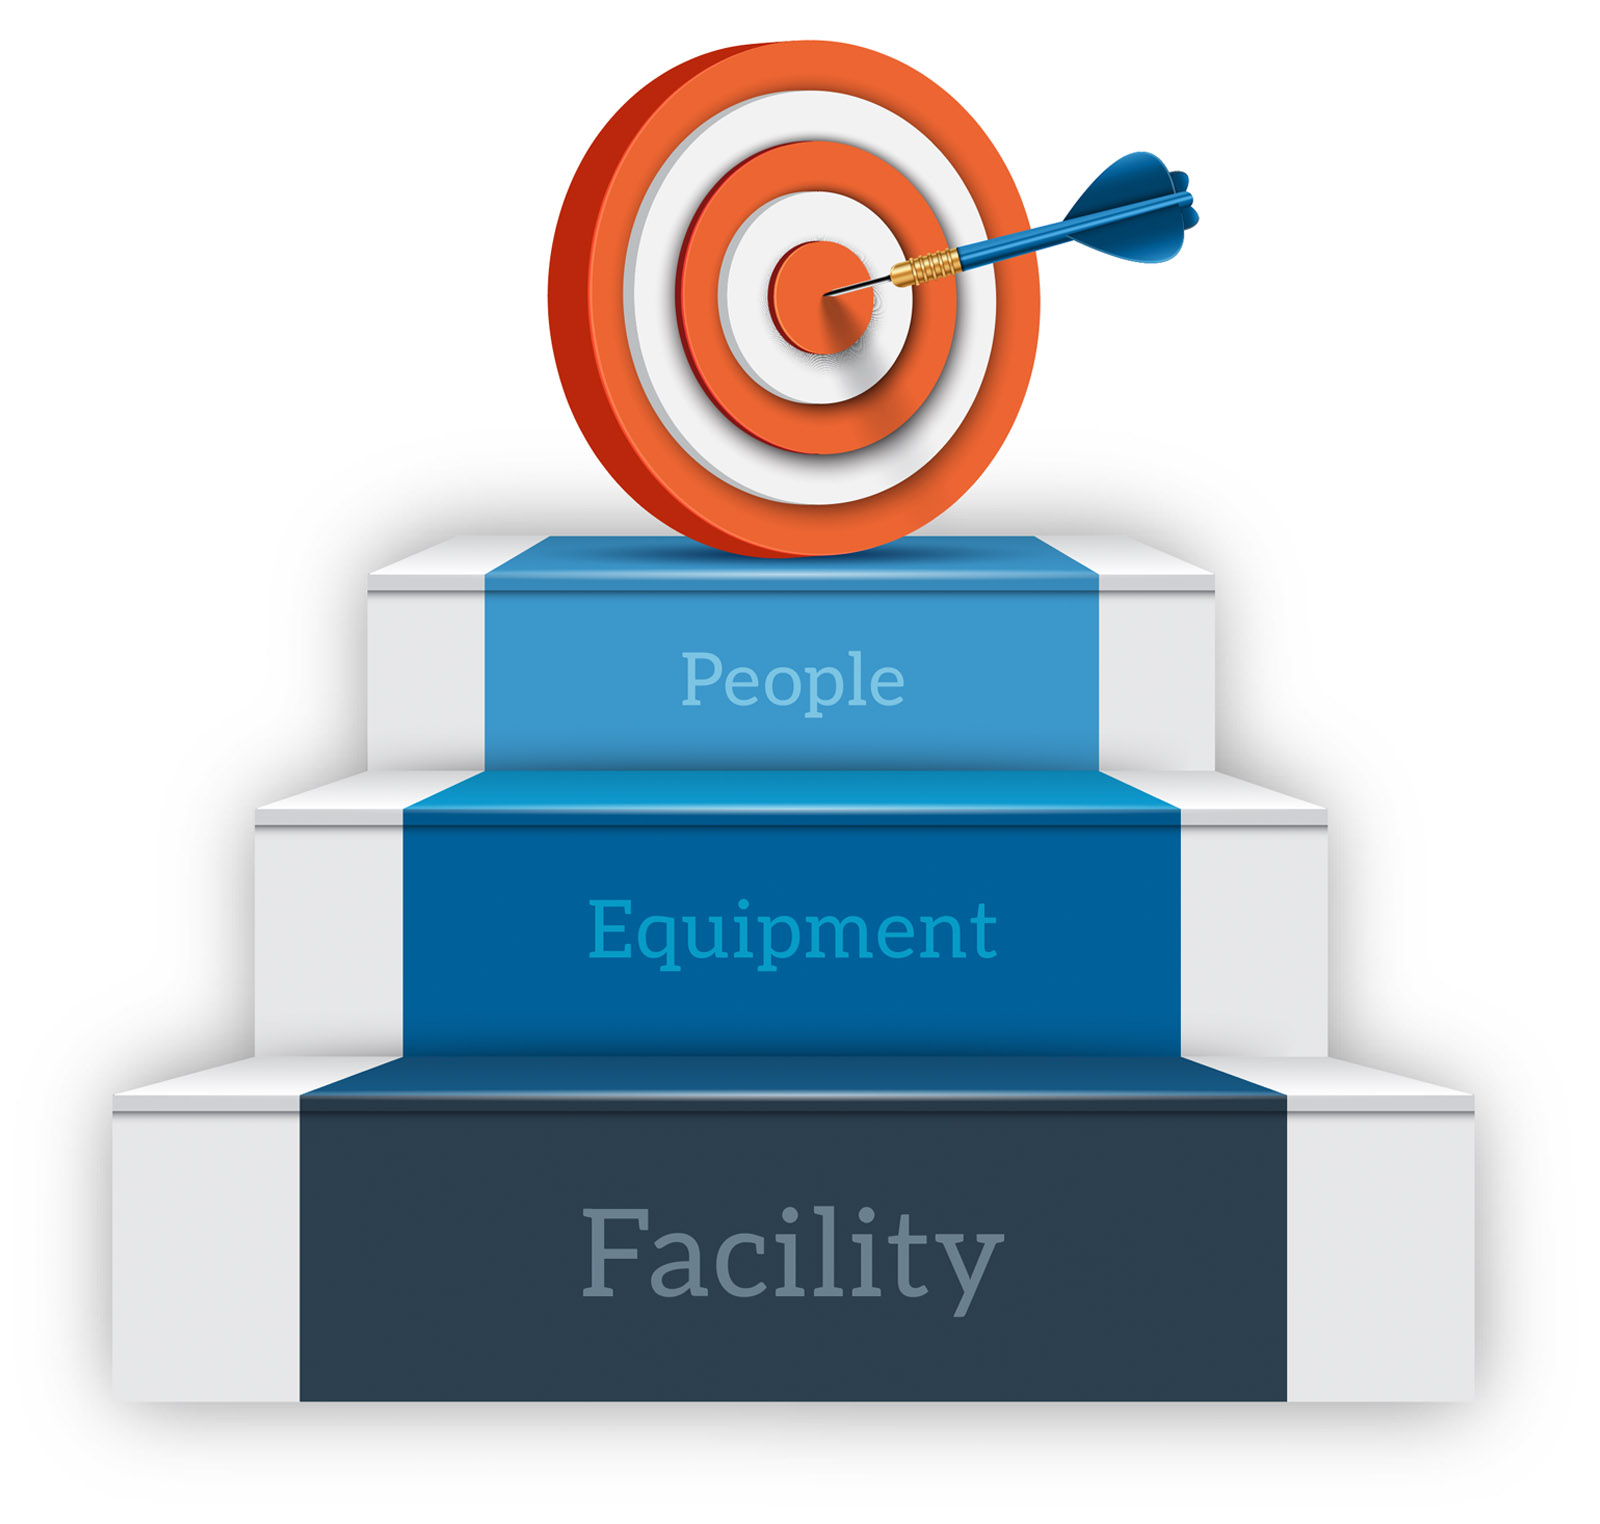 people equipment facility infographic, arrow hitting target